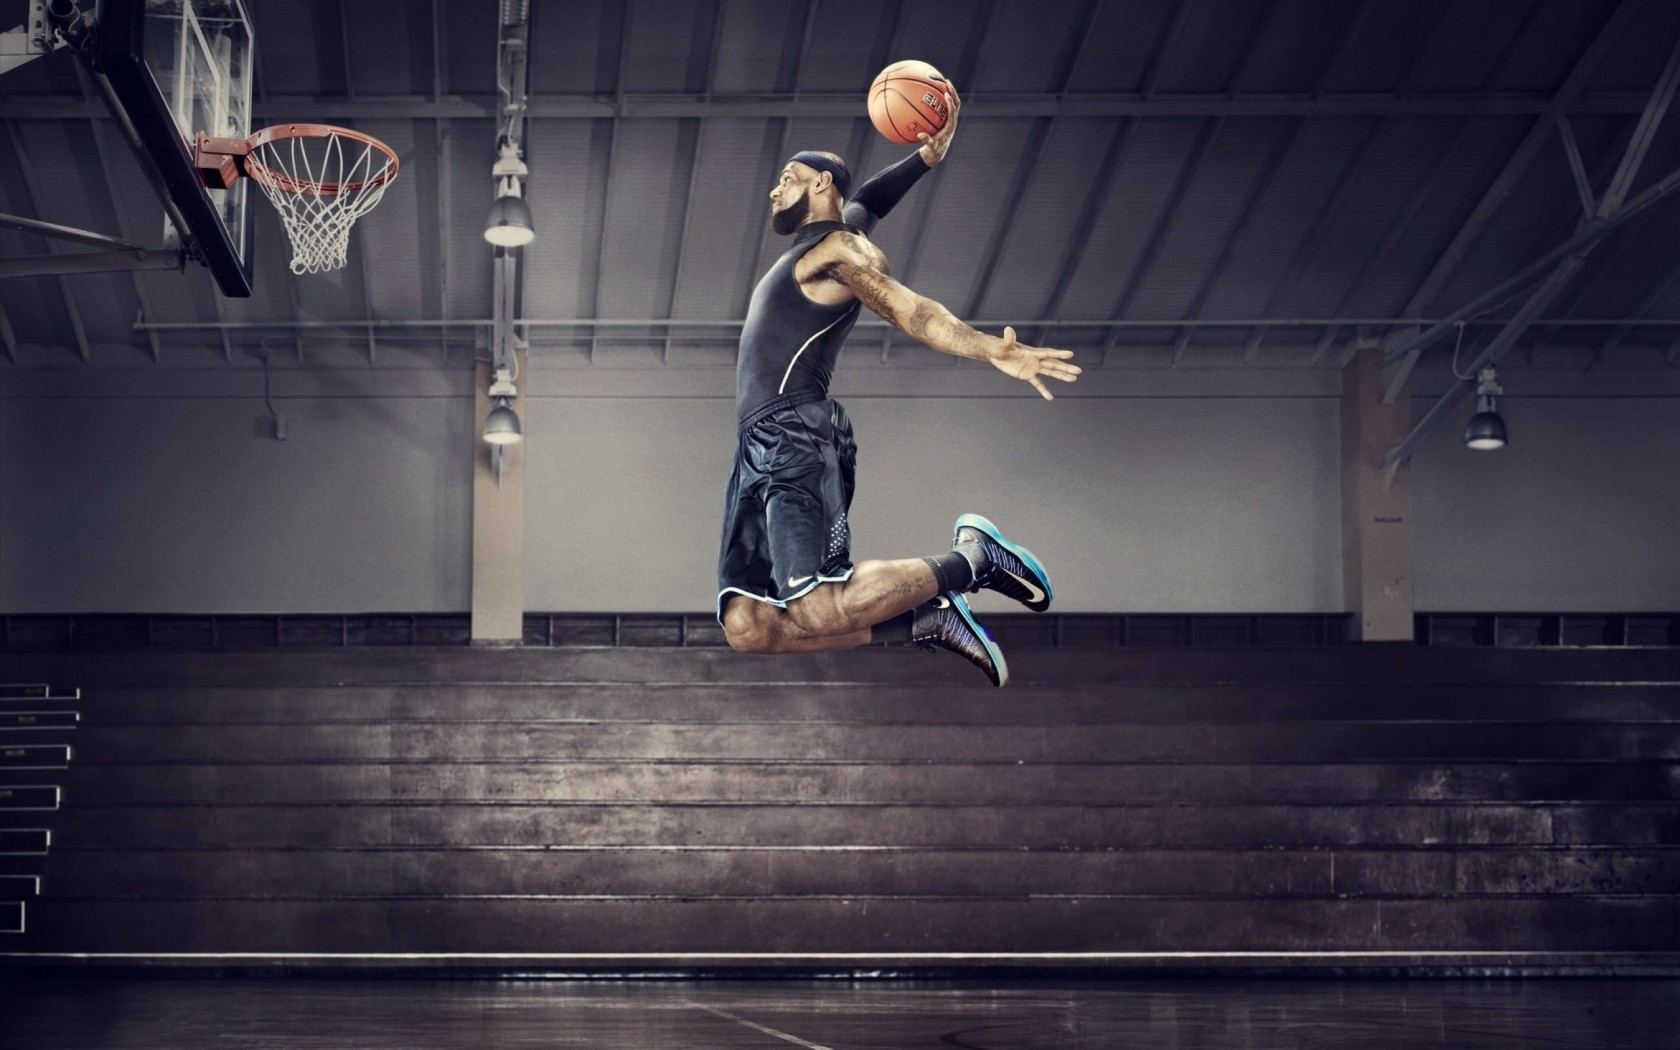 Lebron James Dunk Wallpaper for Desktop 1680x1050